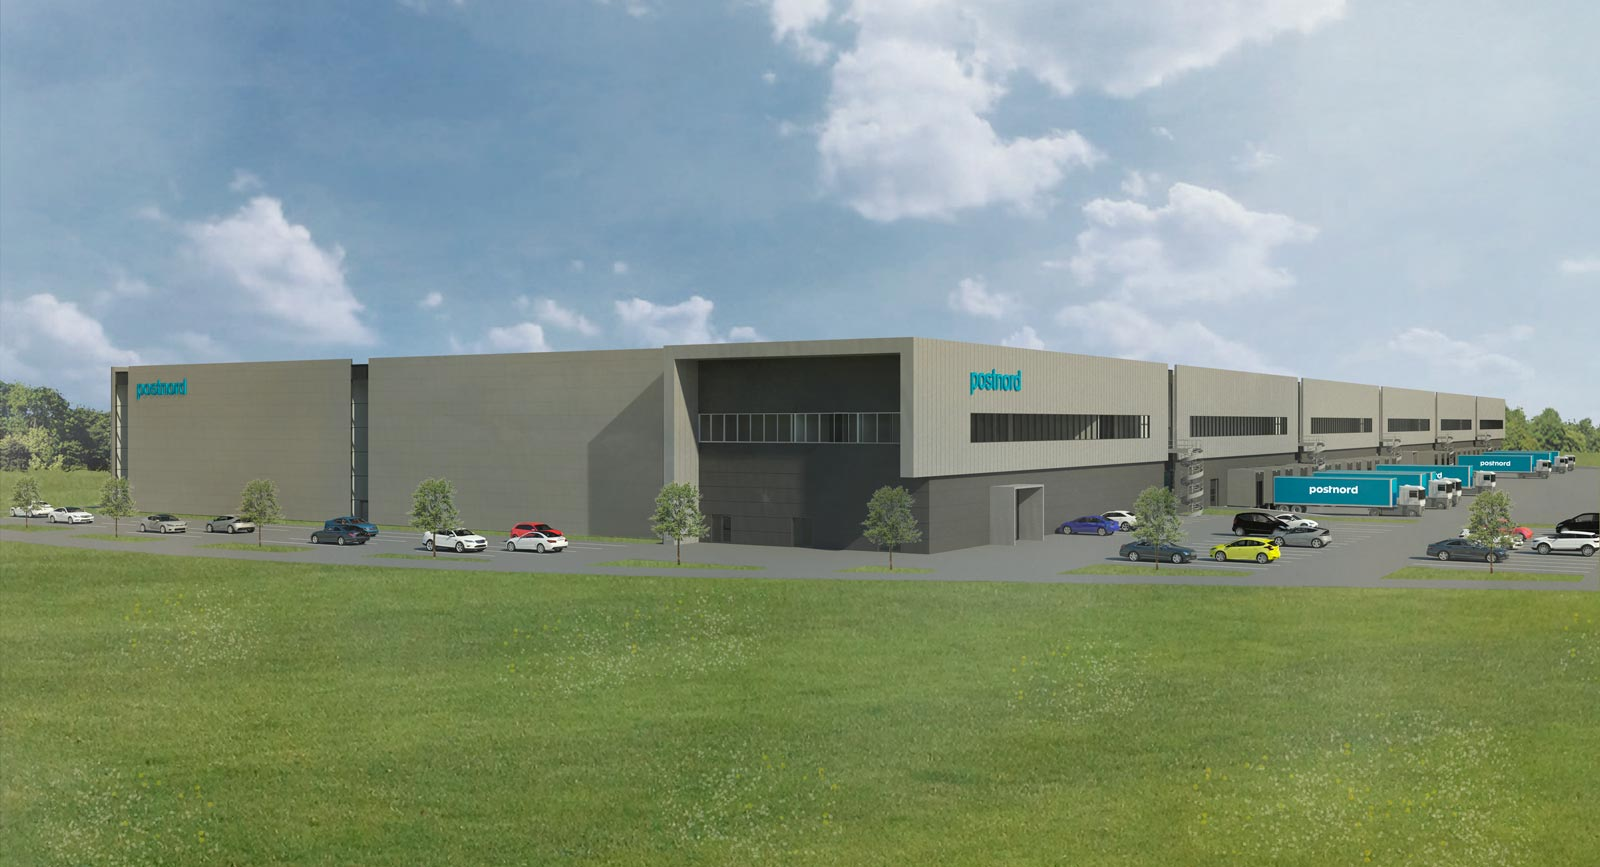 Large logistics building project for PostNord initiated in Køge